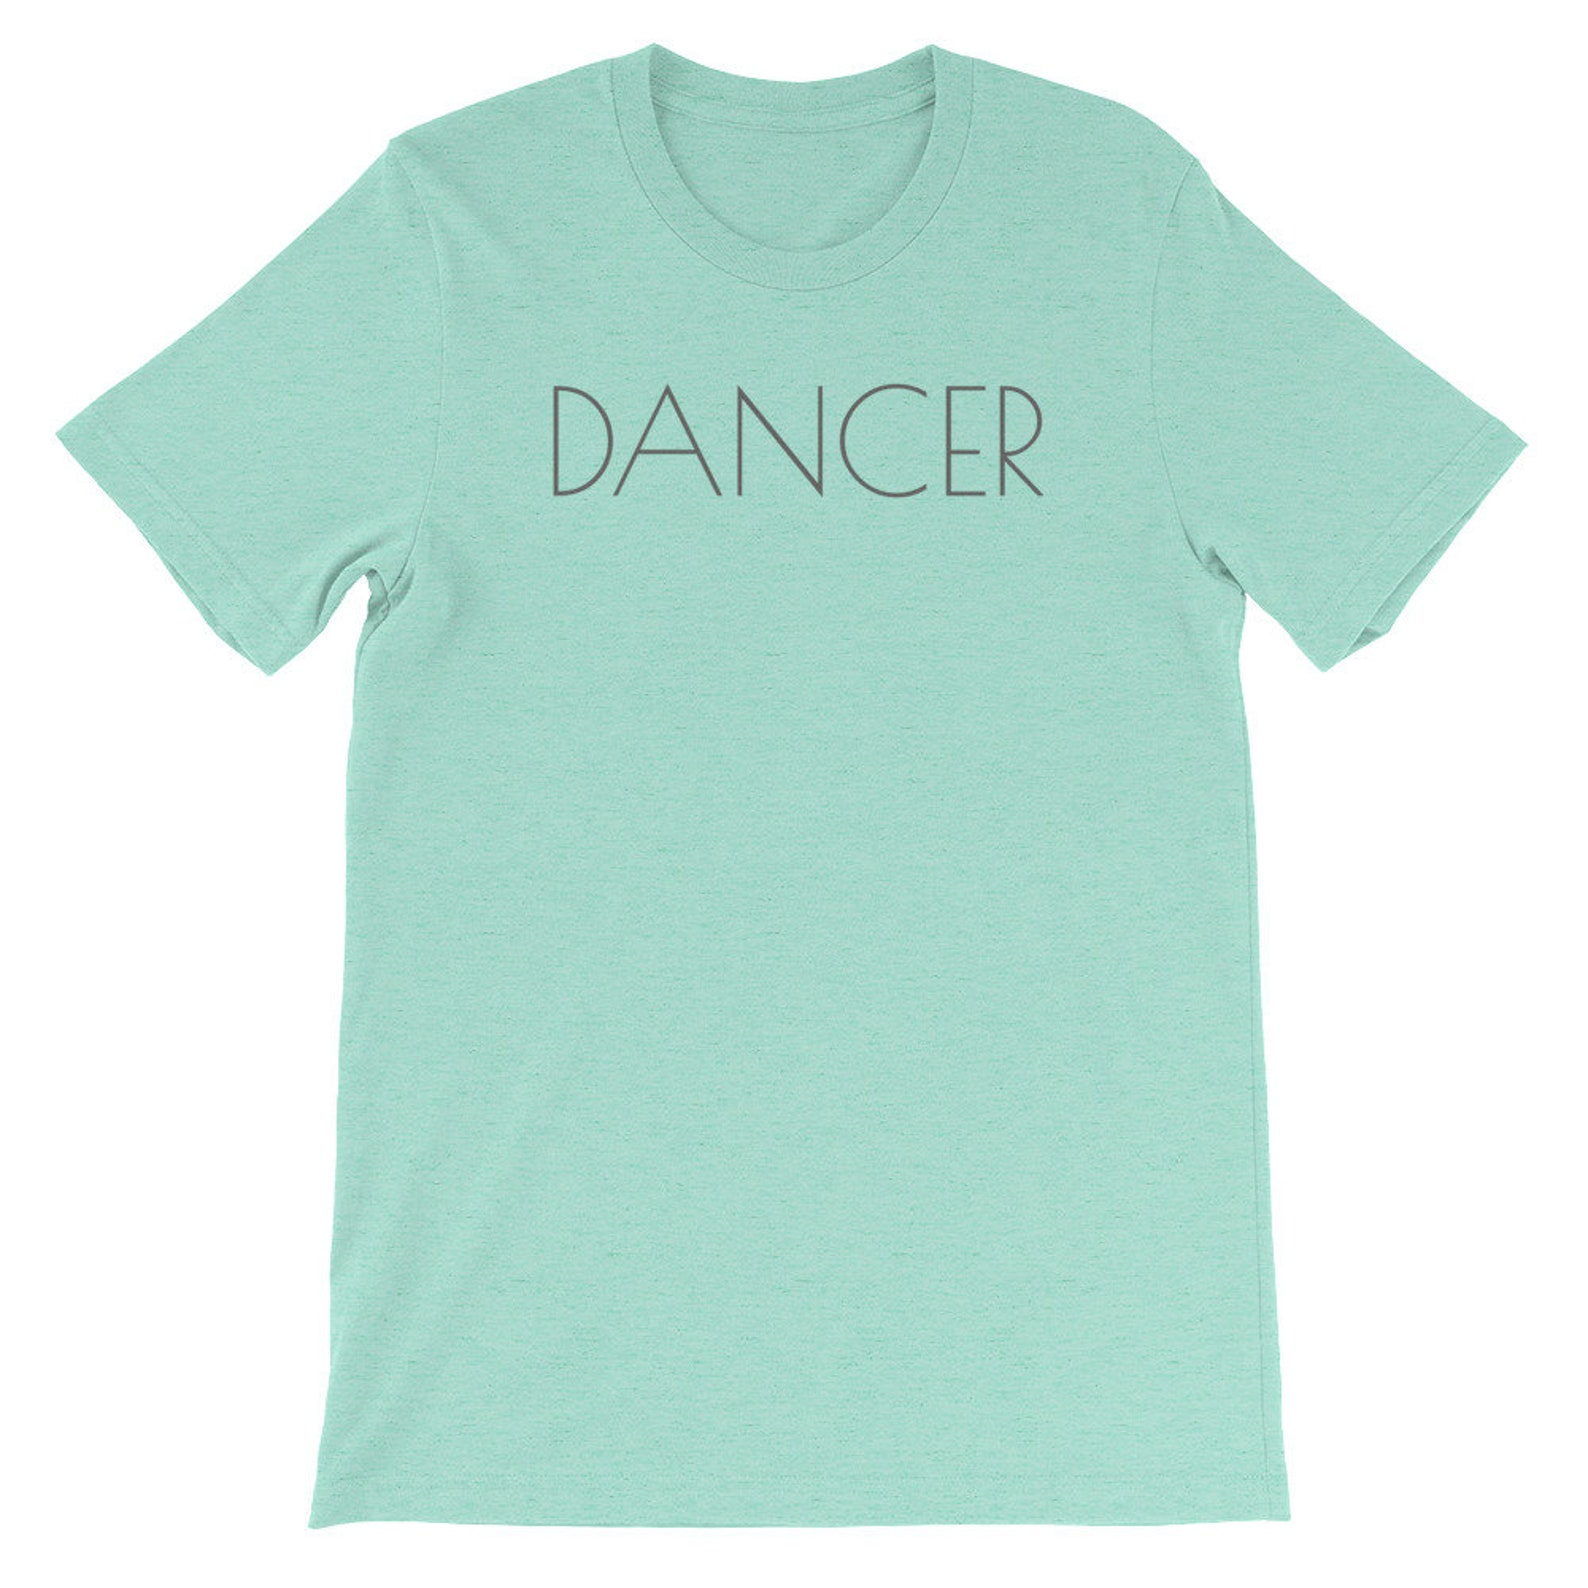 dancer large text ballet dance ballerina dancer simple black